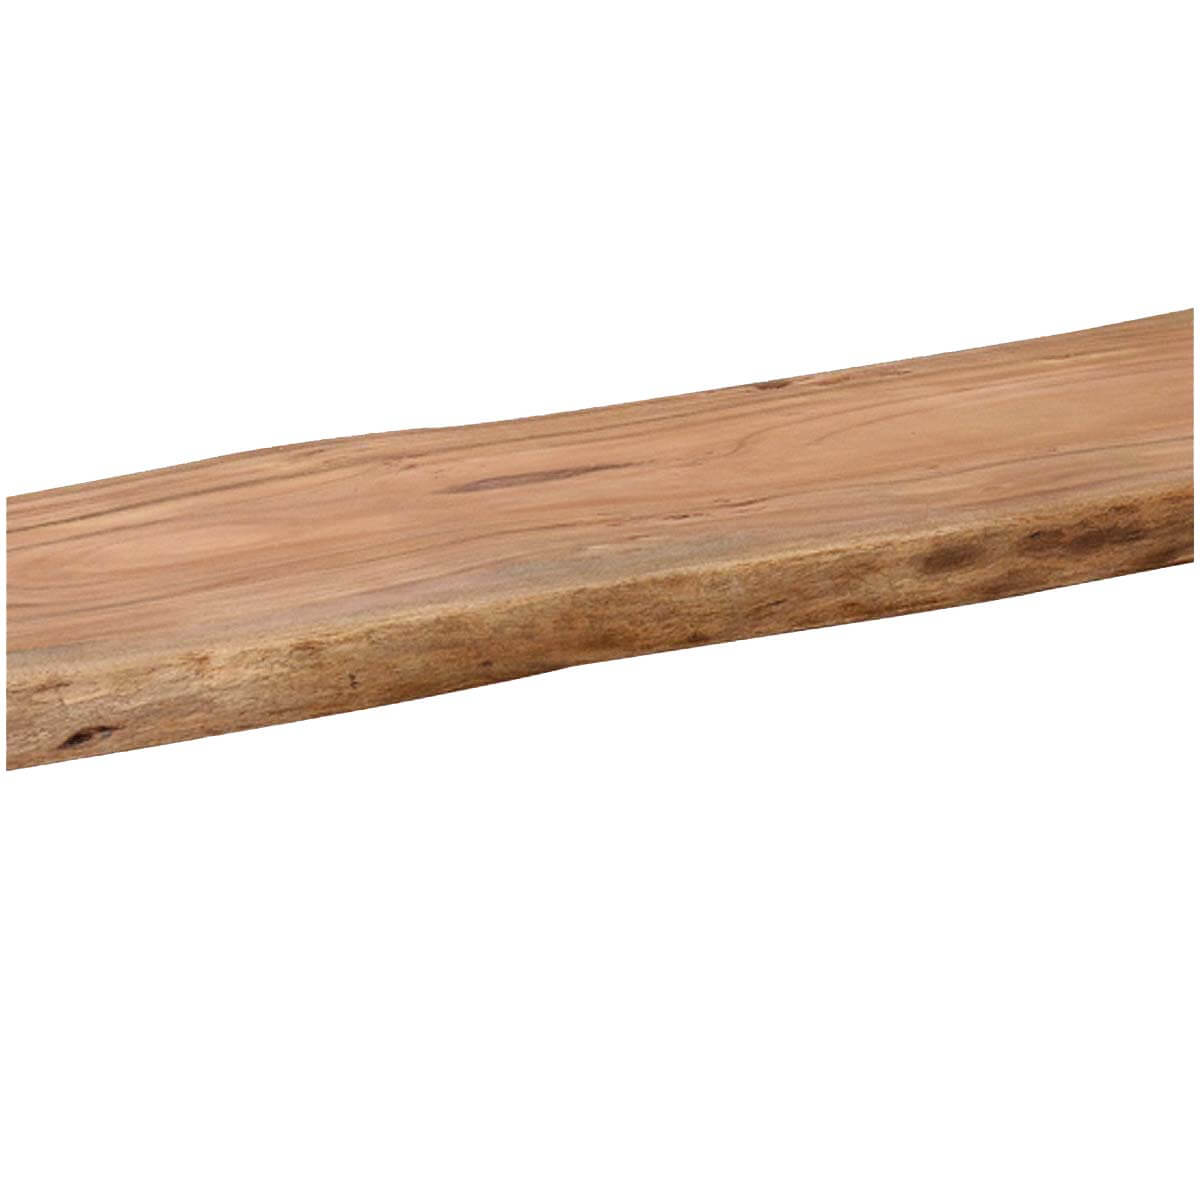 Rustic Wood Bench : ... Rustic Industrial Solid Wood Iron Base Organic Live Edge Bench